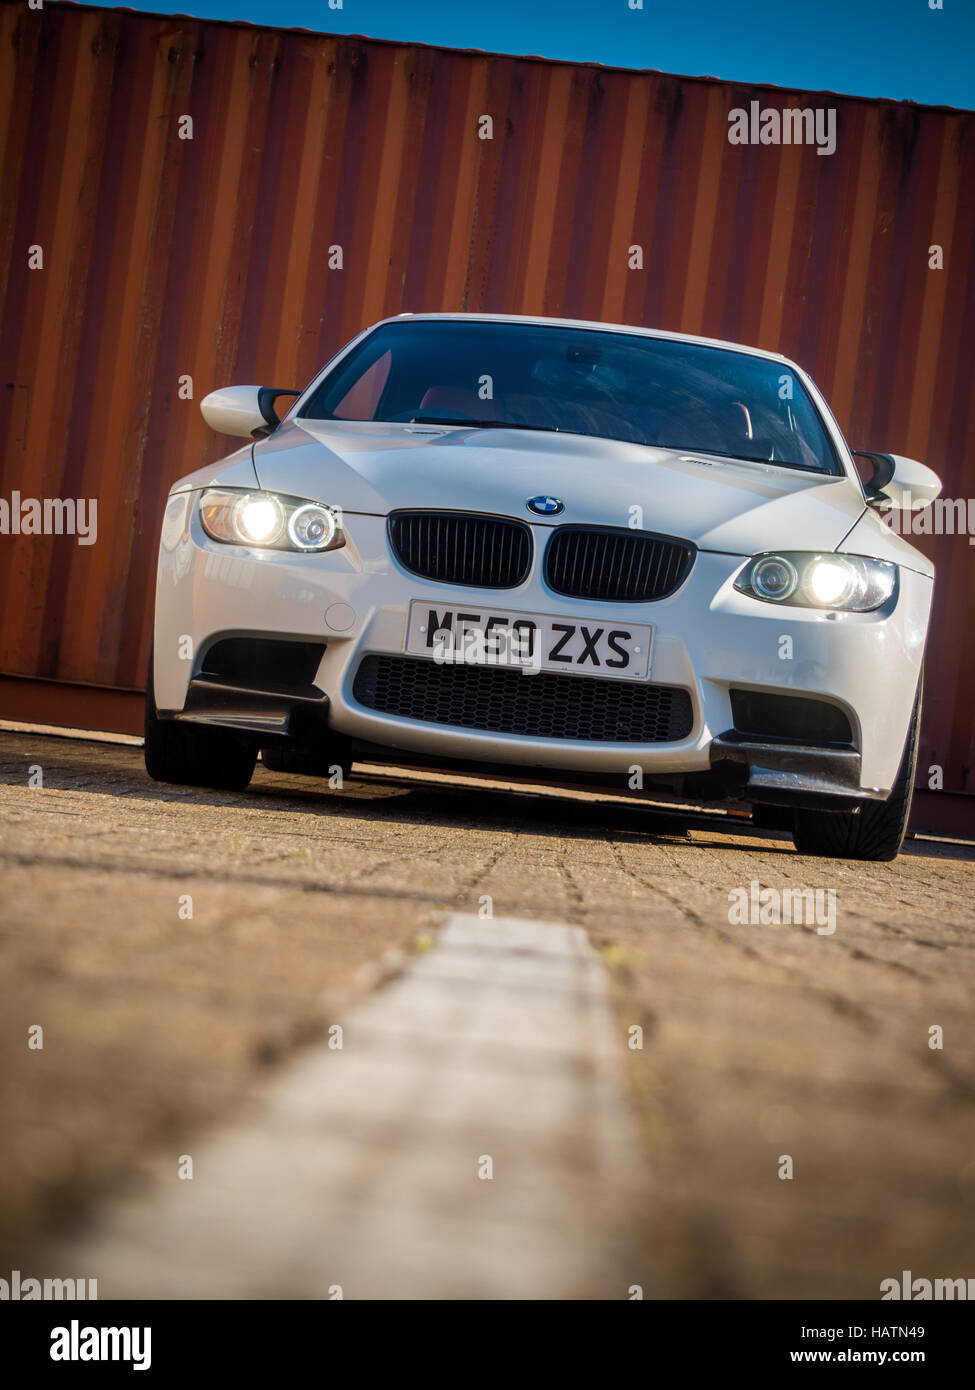 BMW E92 M3 3 Series   Stock Image